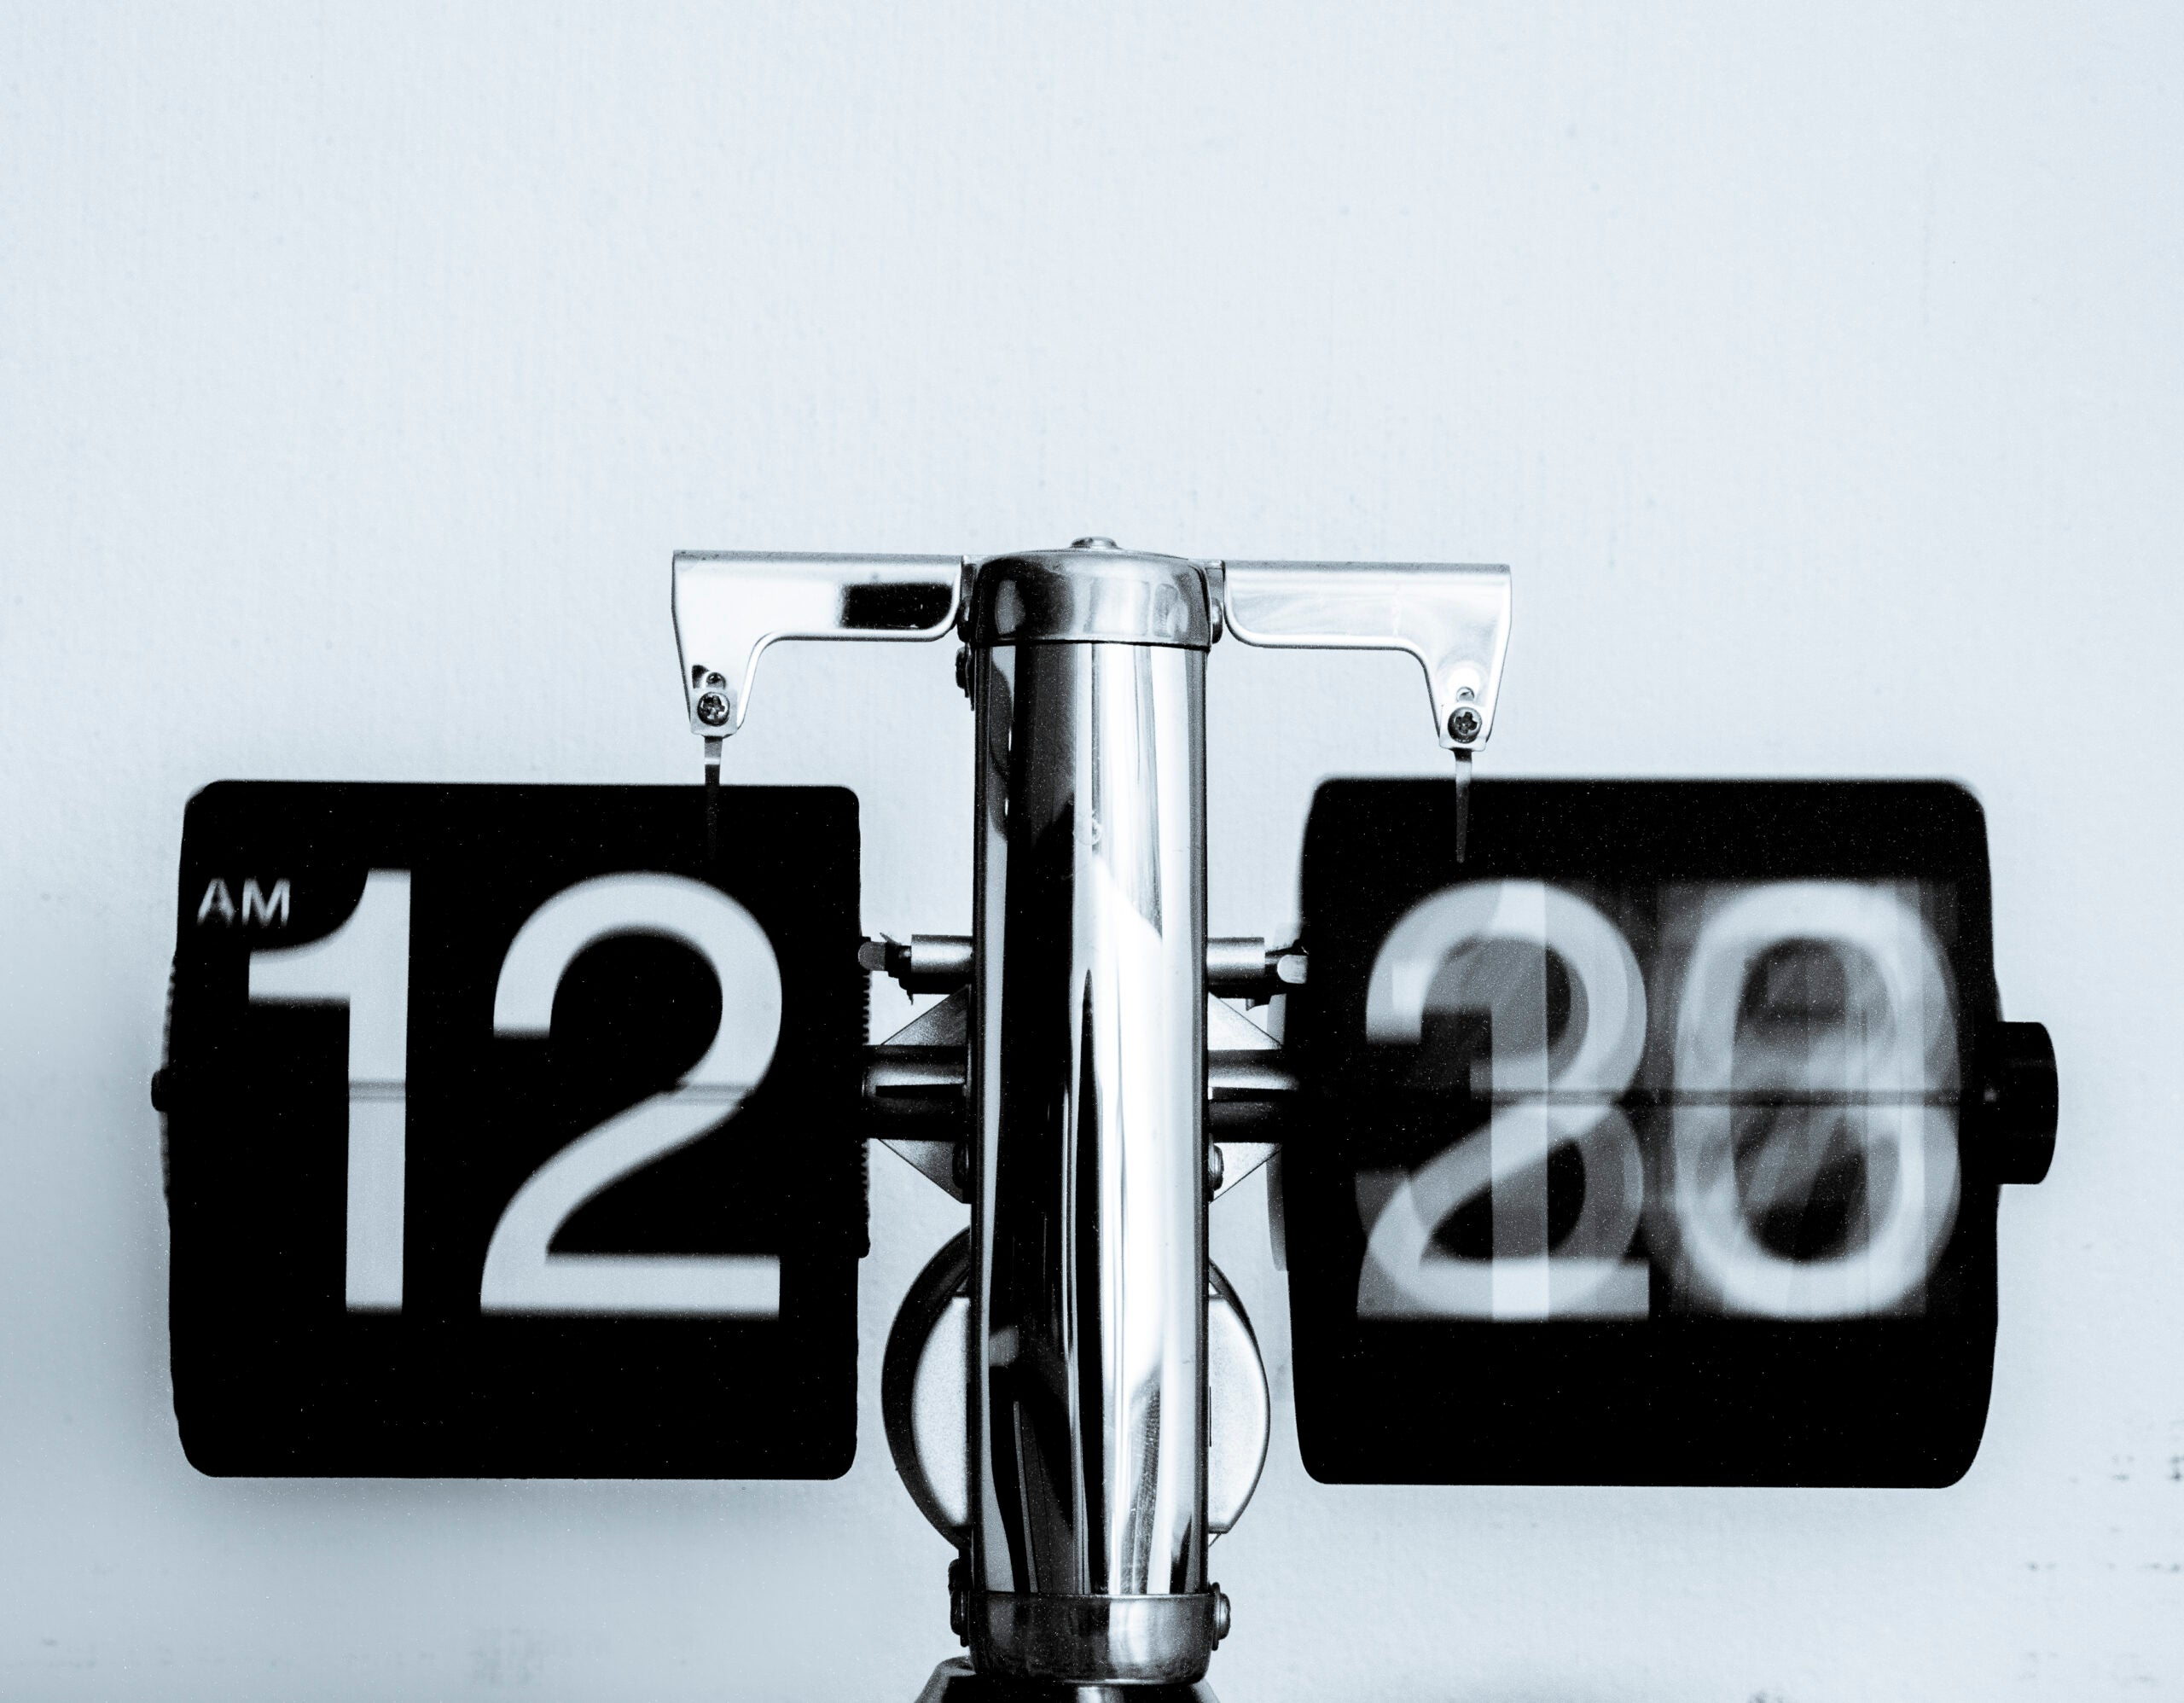 How the heck do you even add a leap second to the year?